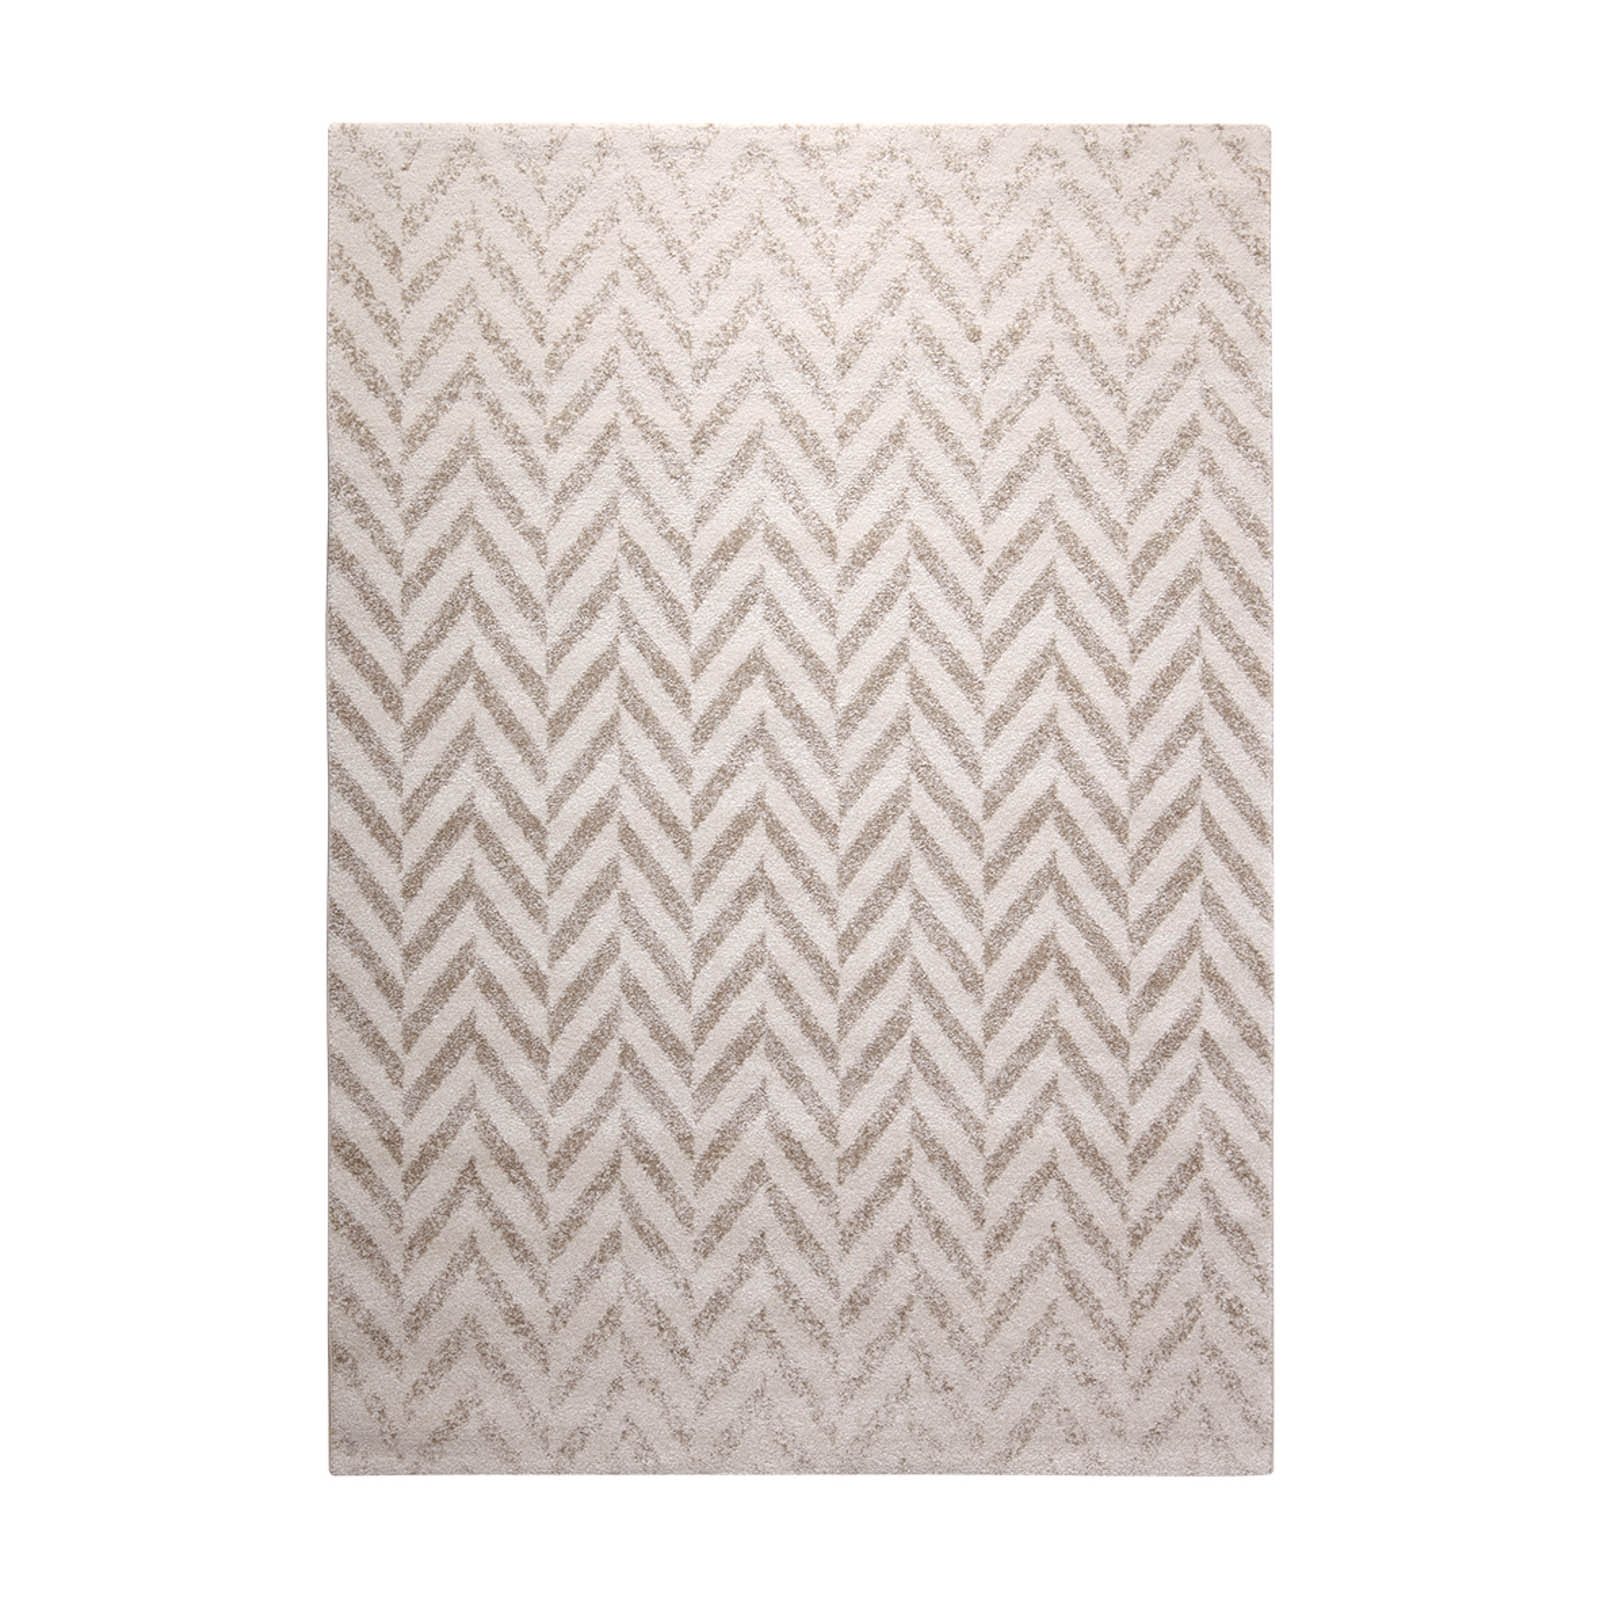 Highway Rugs 2081 670 Esprit In Cream And Beige Free Uk Regarding Esprit Rugs (Image 13 of 15)